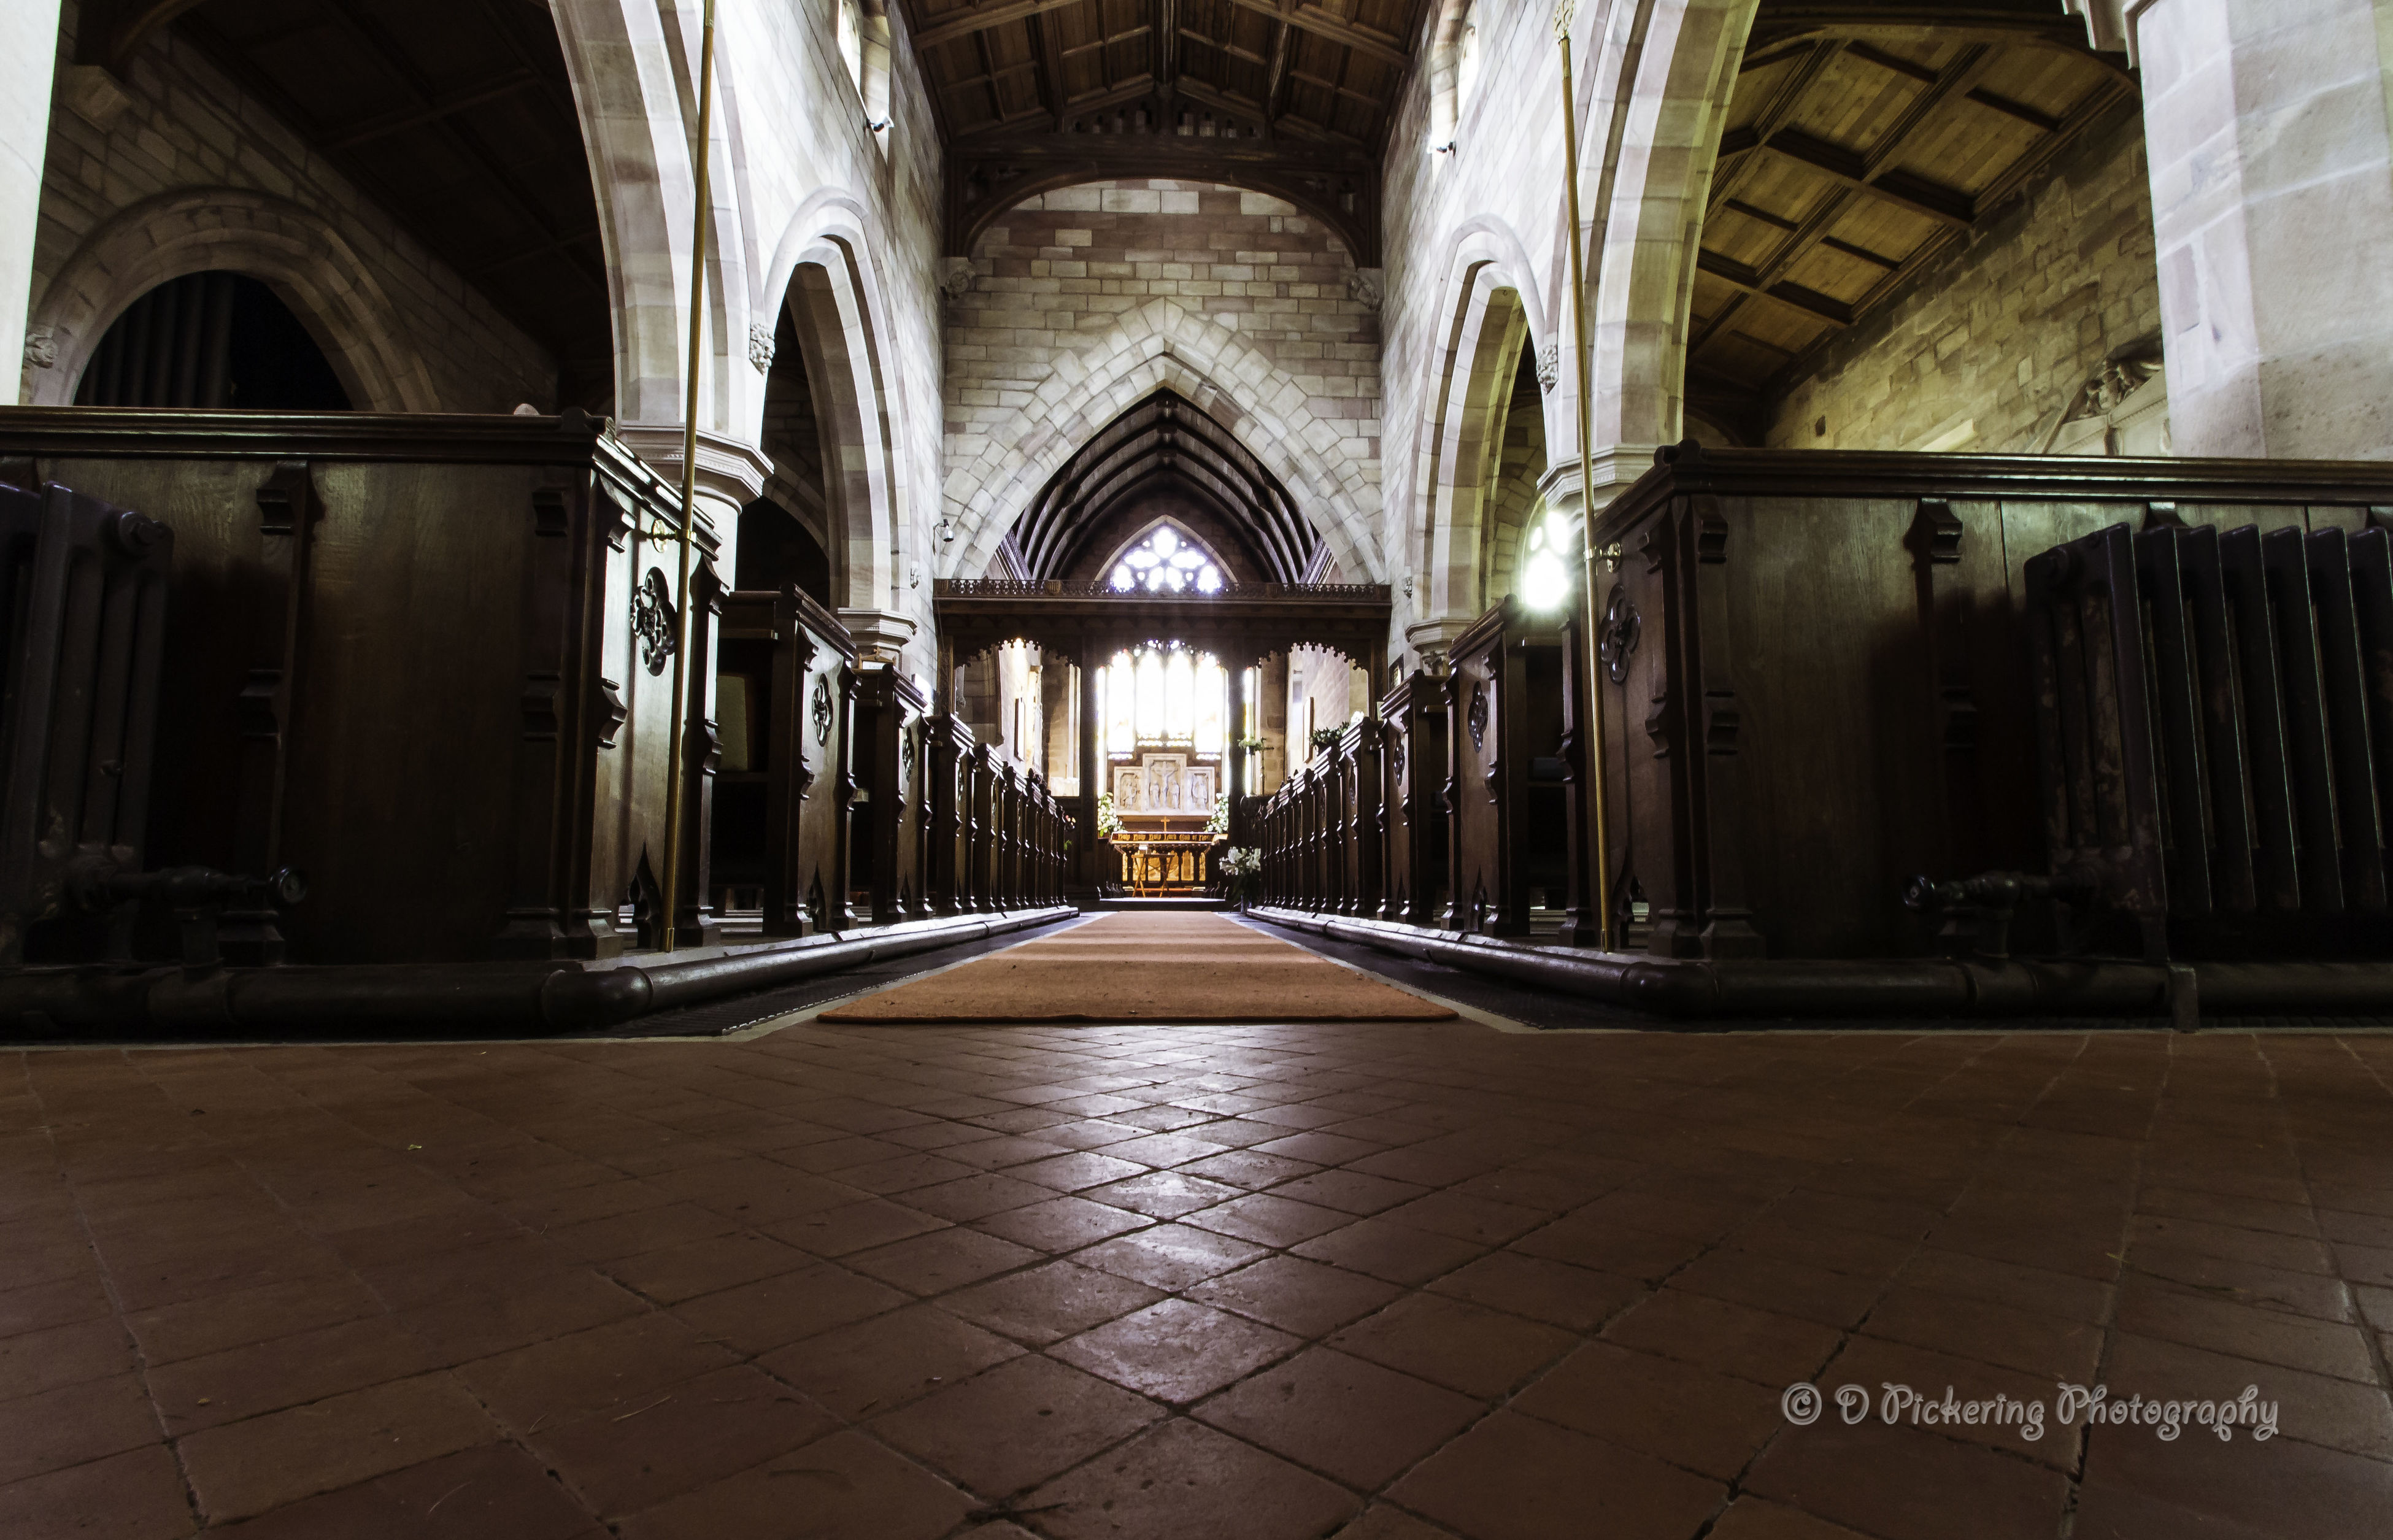 arch, indoors, architecture, built structure, religion, corridor, place of worship, church, the way forward, spirituality, architectural column, history, interior, diminishing perspective, travel destinations, colonnade, cathedral, empty